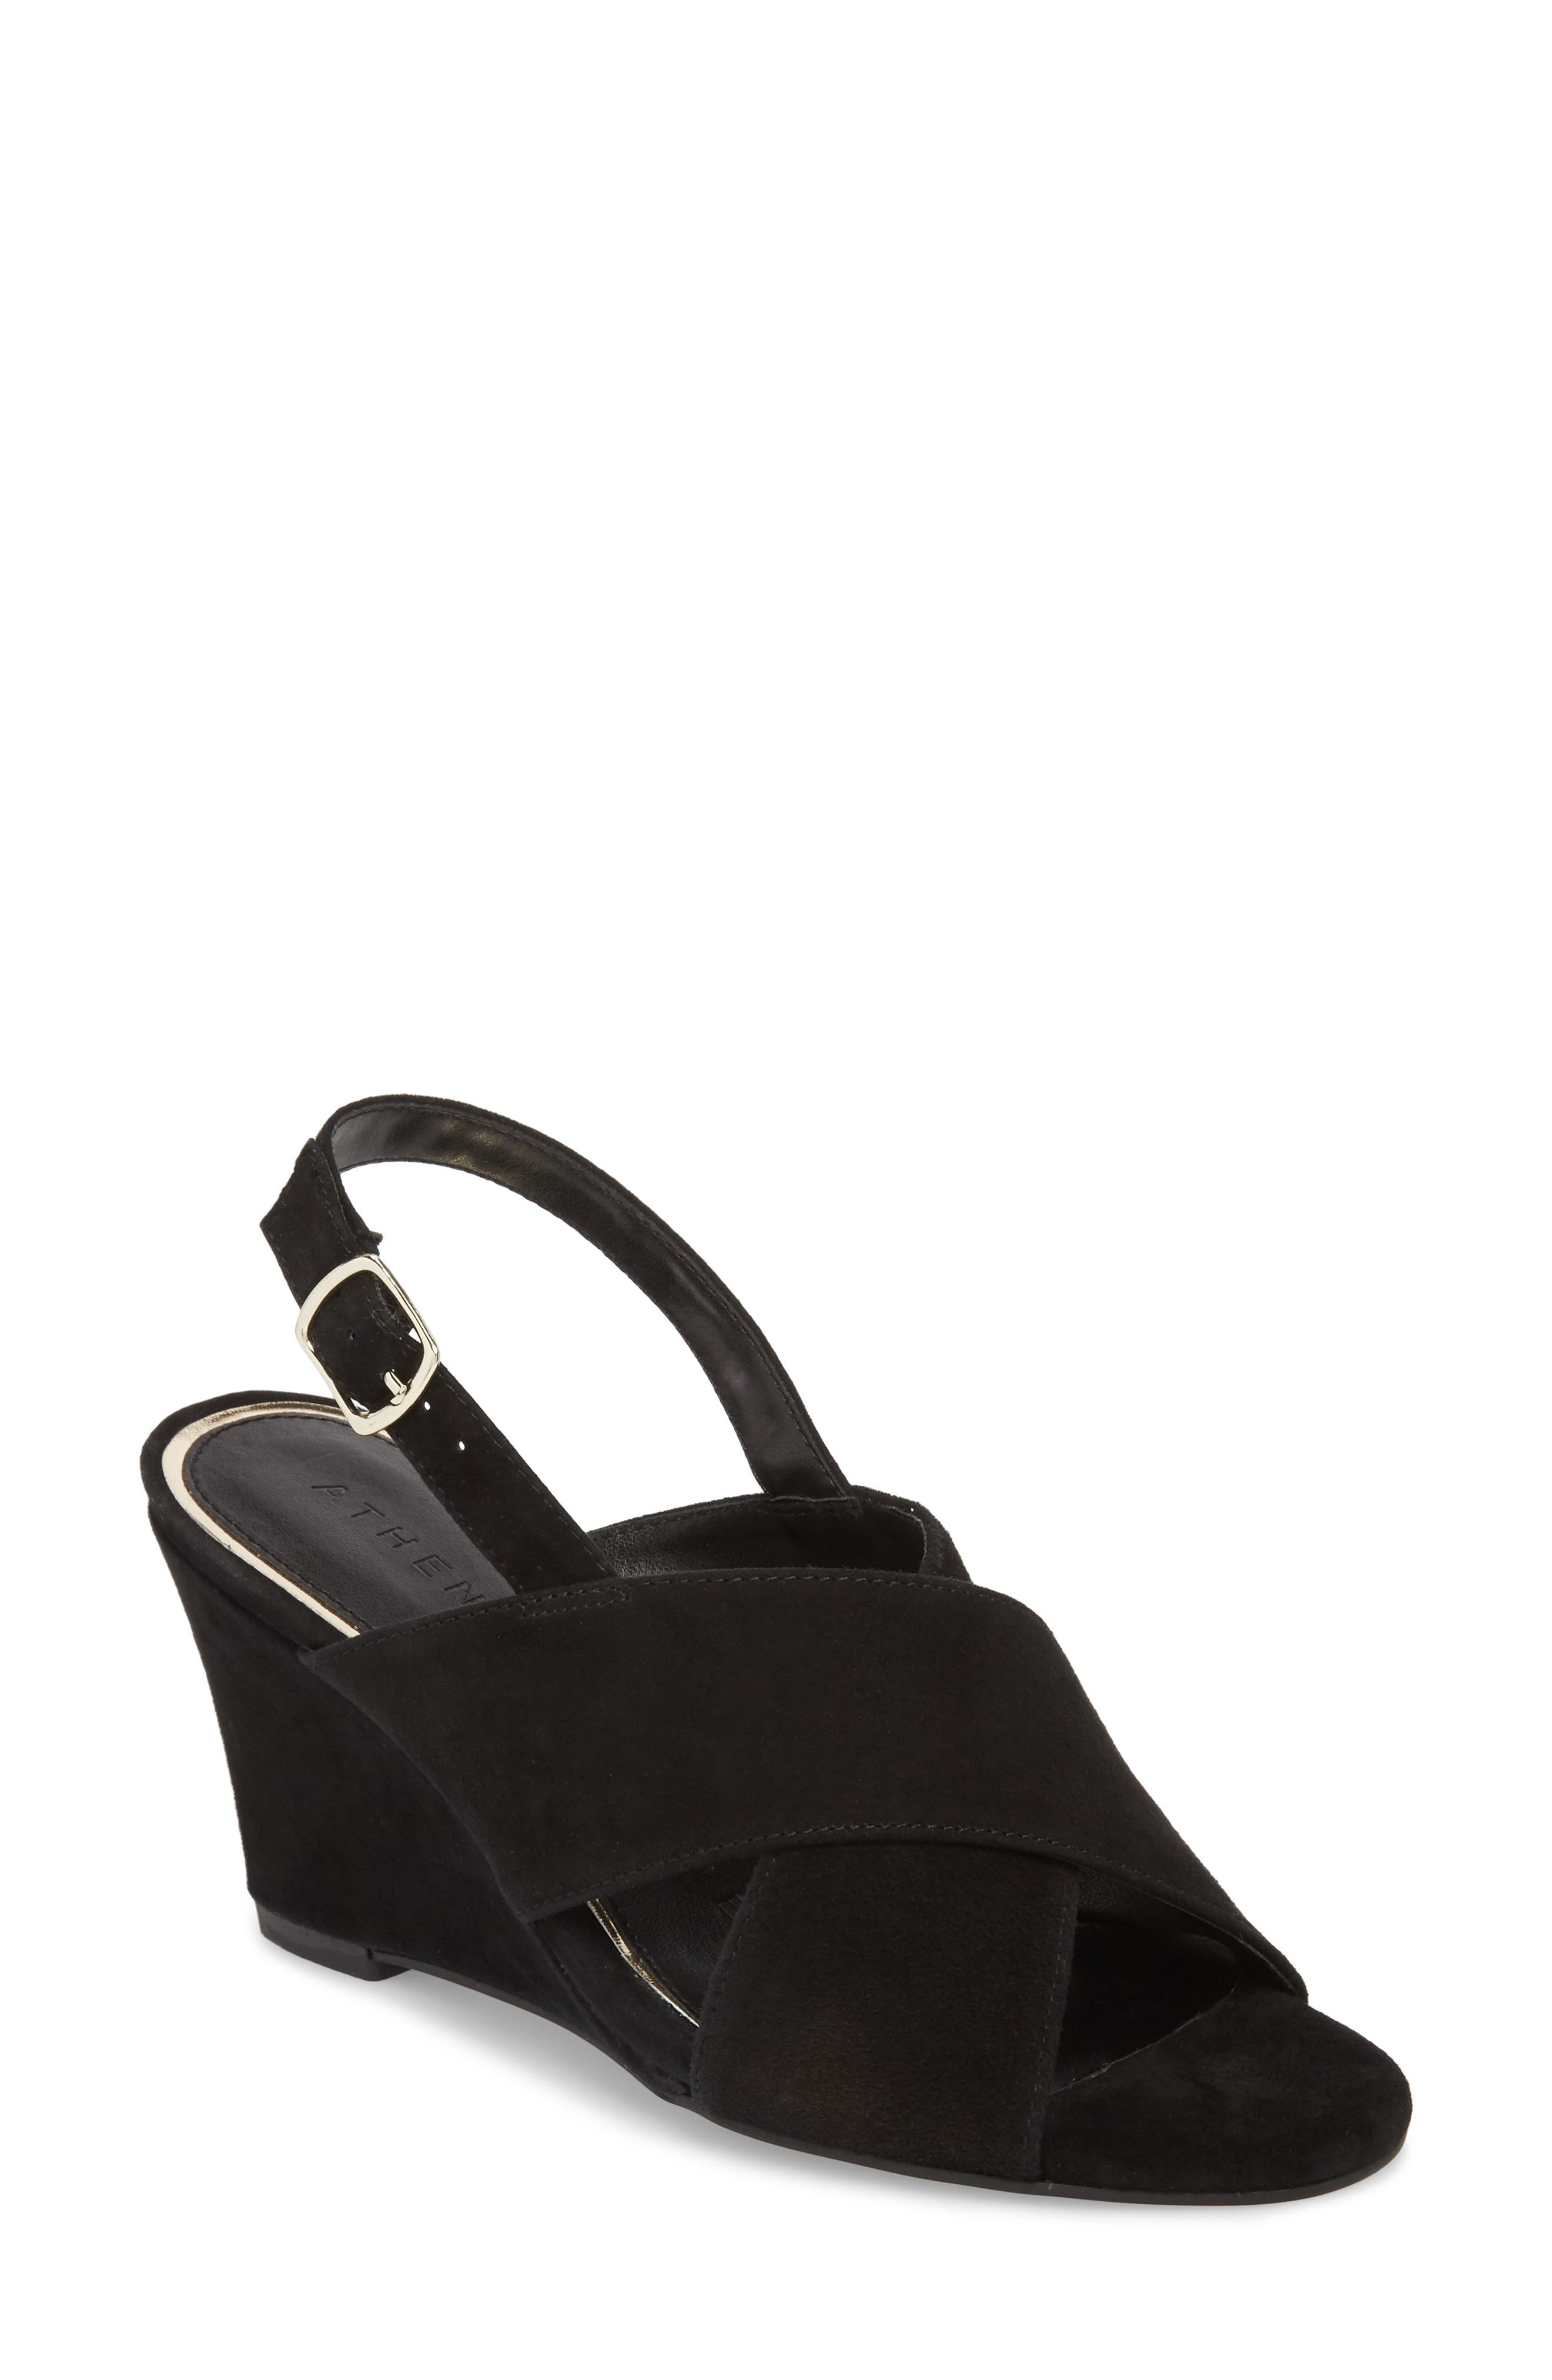 Eastford Wedge Sandal,                         Main,                         color, BLACK SUEDE